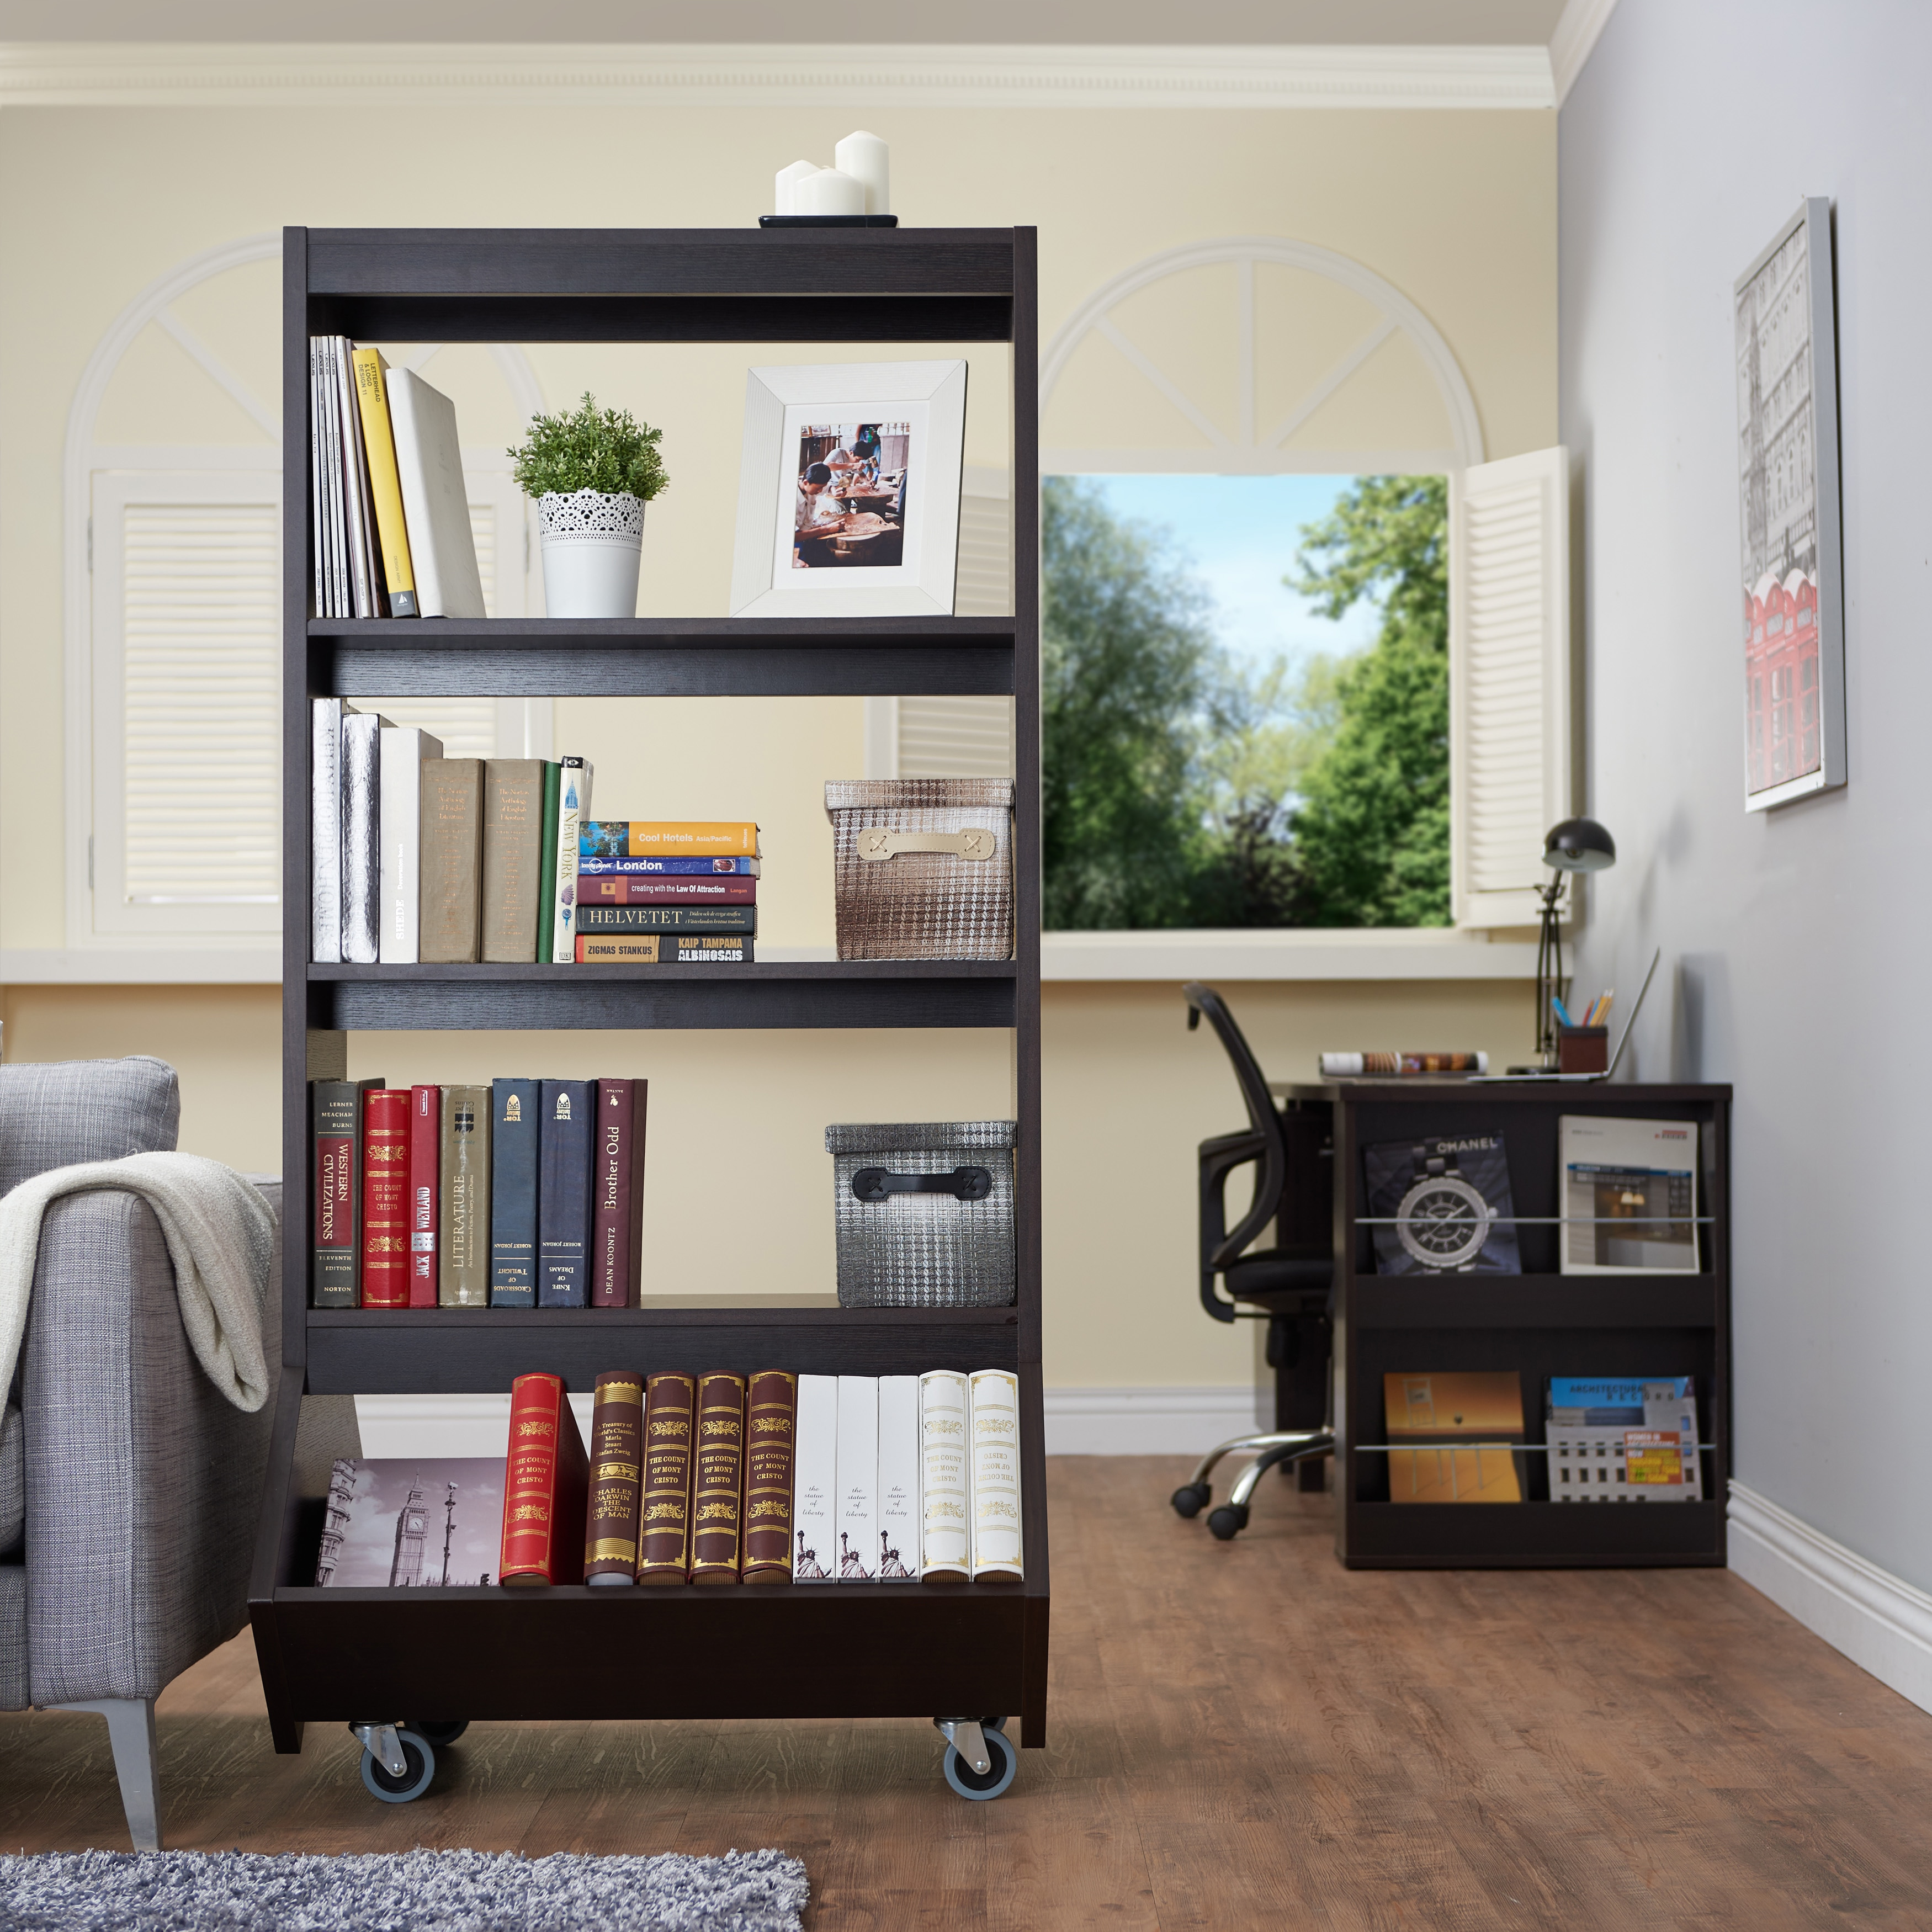 room the fabulous create interior boxes home space to short decor storage use narrow divider ideas within book bookshelf more natural wood with square rack furniture shelf your green